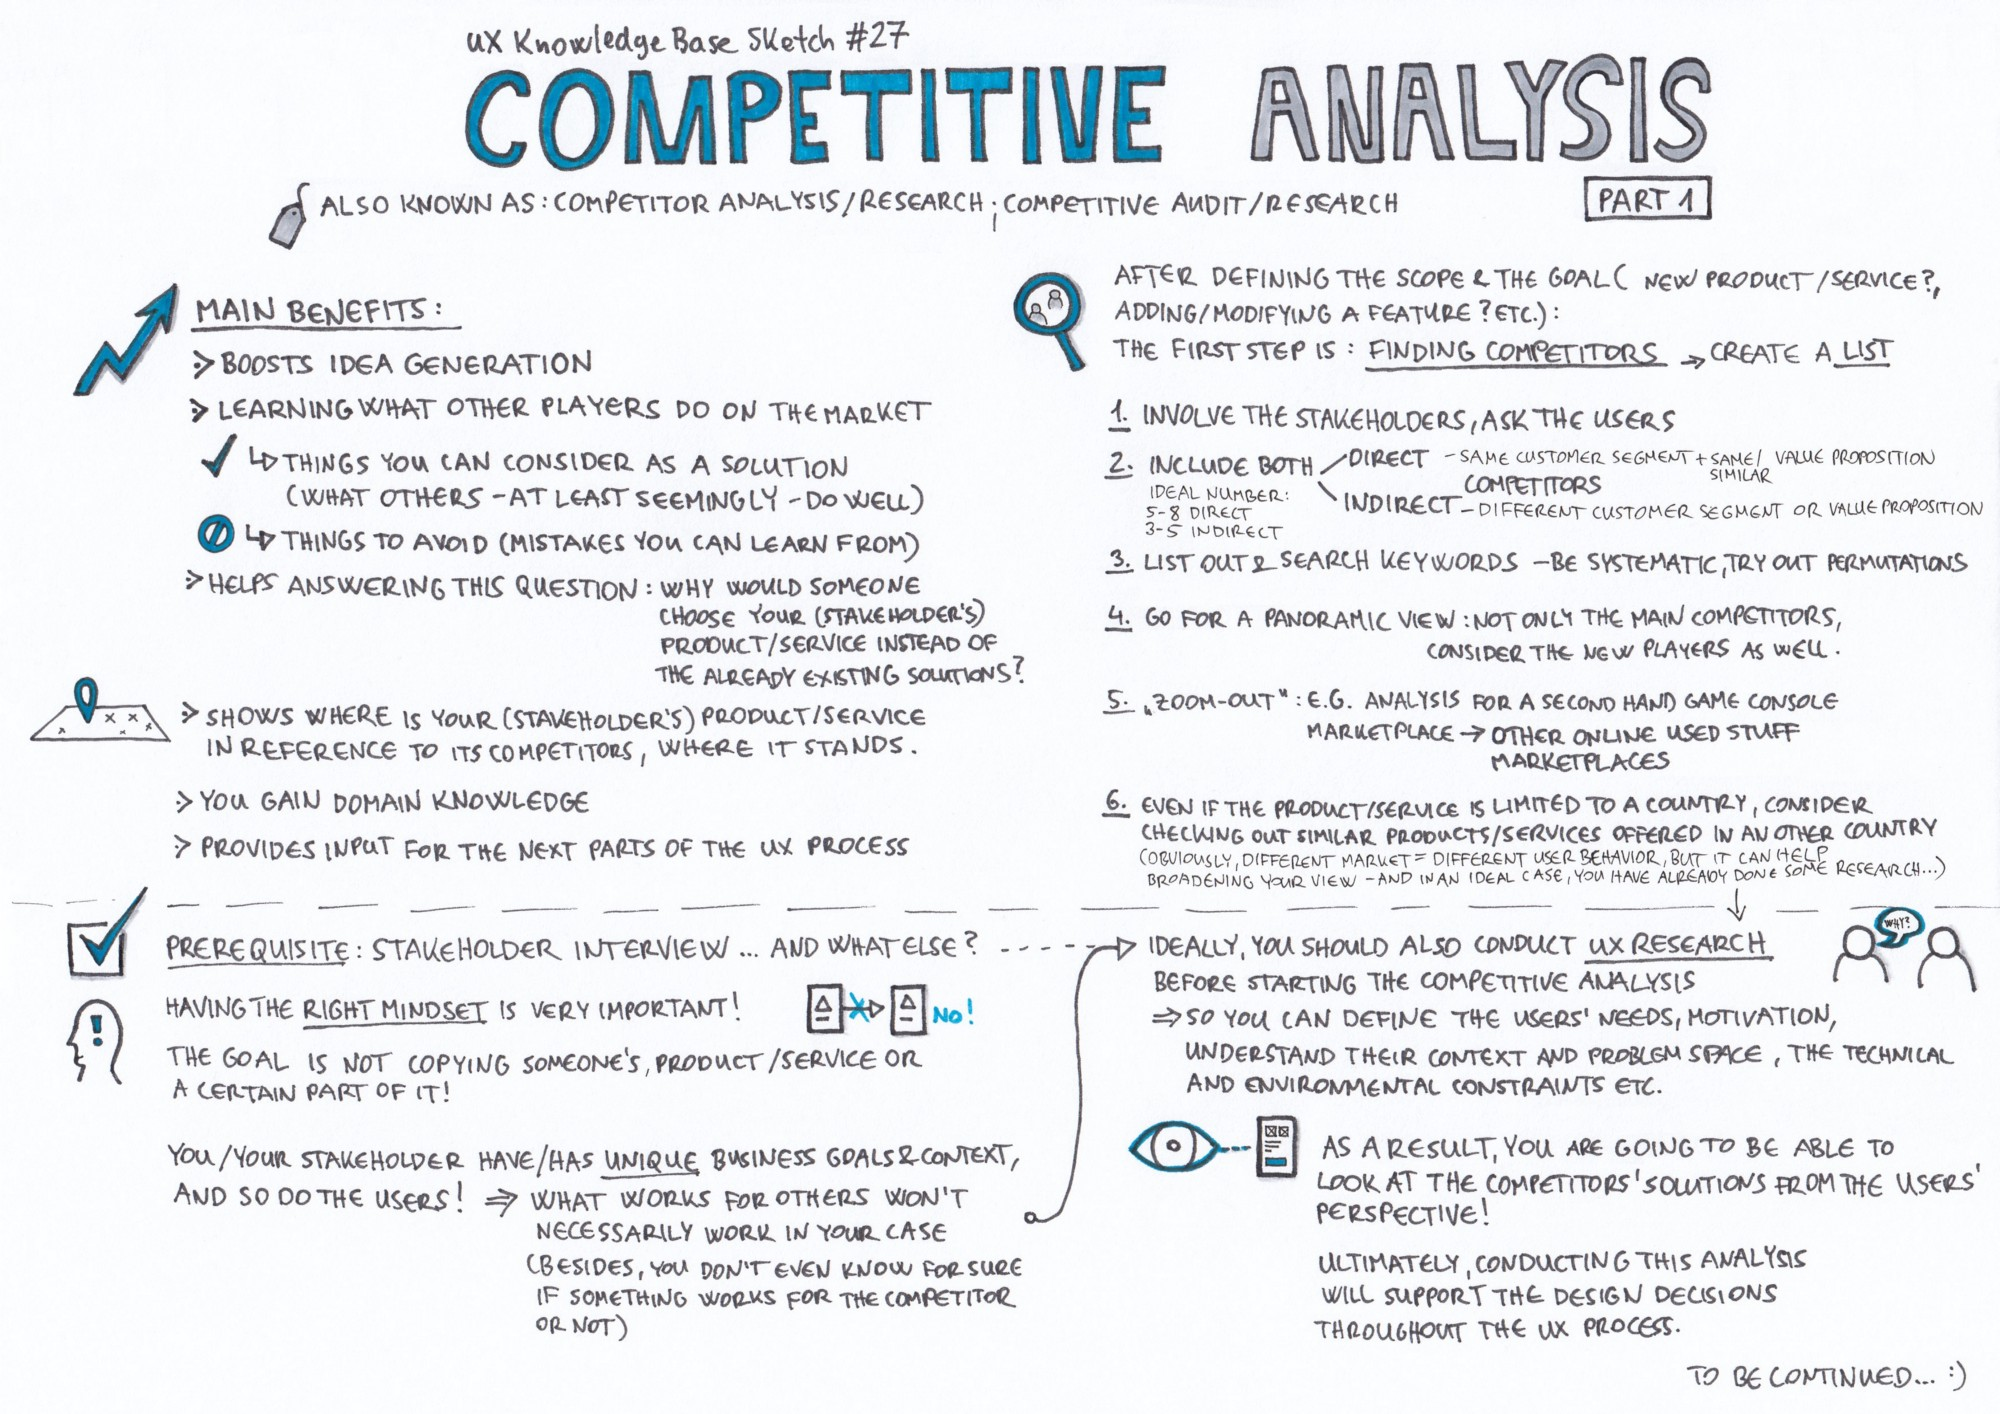 Competitive Analysis Part 1 Ux Knowledge Base Sketch